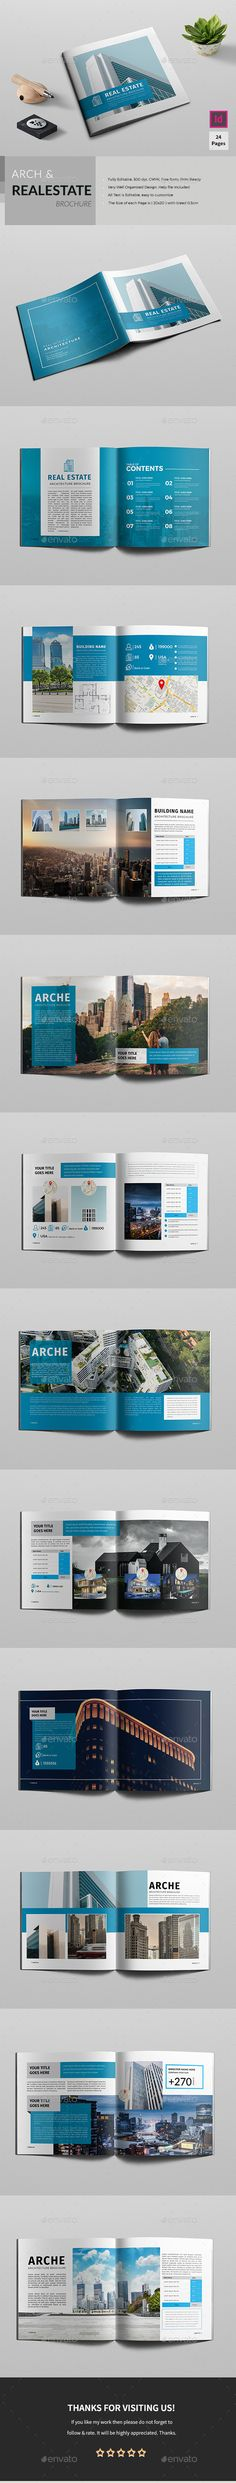 Square Realestate / Architecture Brochure Template InDesign INDD